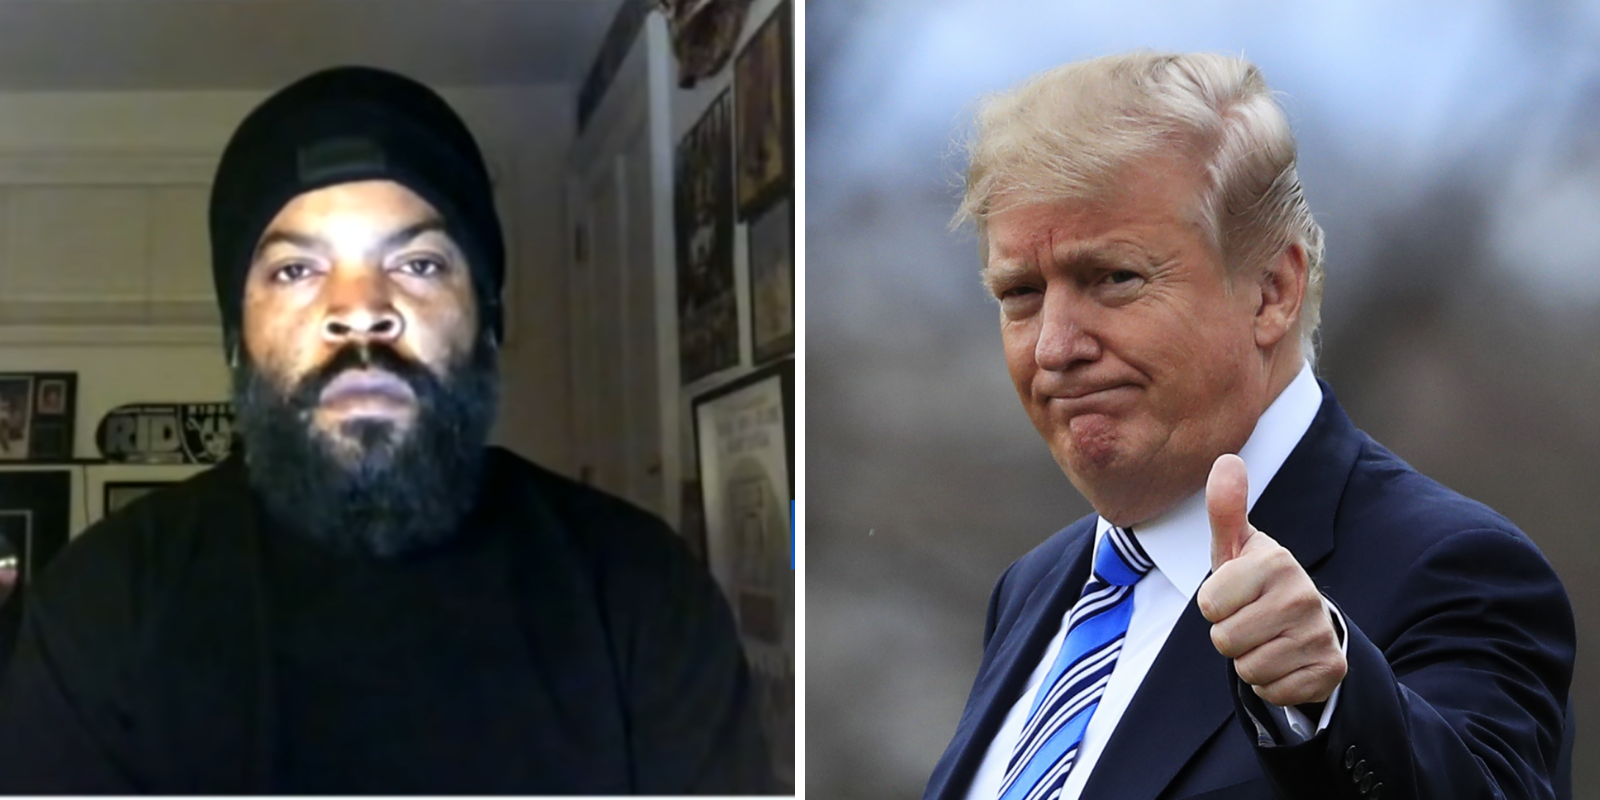 Ice Cube supports Trump's plan for black Americans